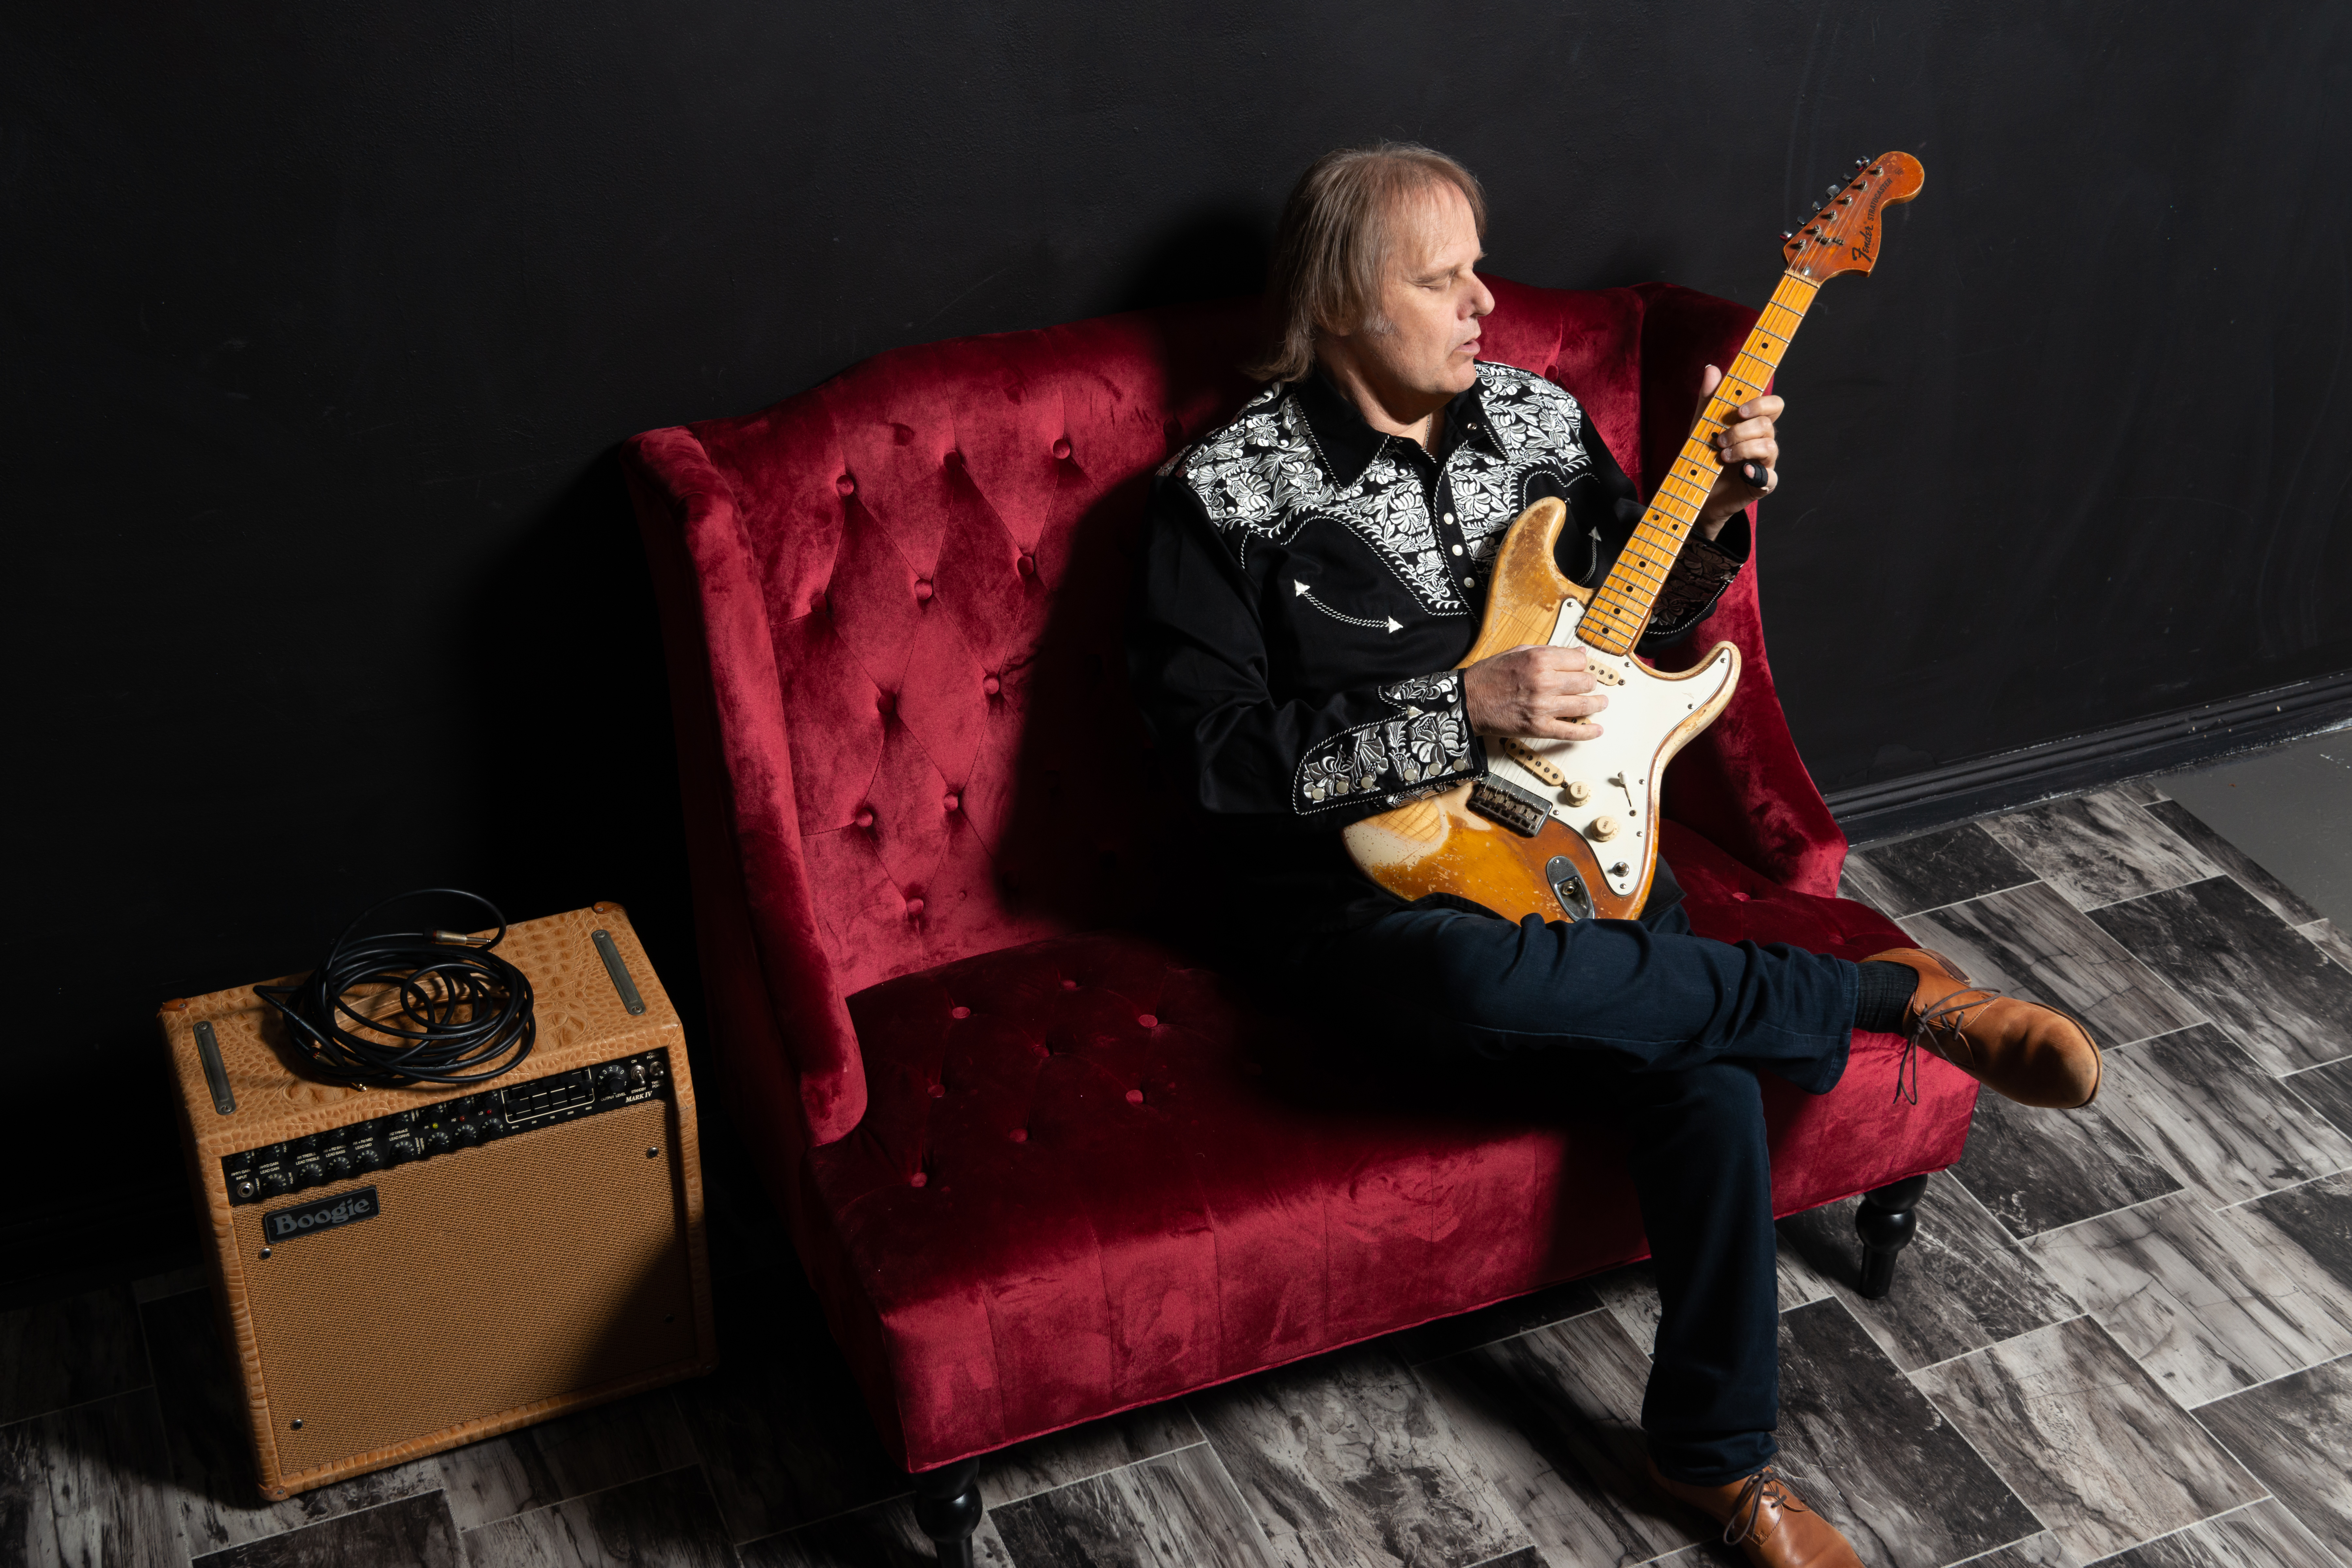 WALTER TROUT CONCERT IN SEATED SETTING